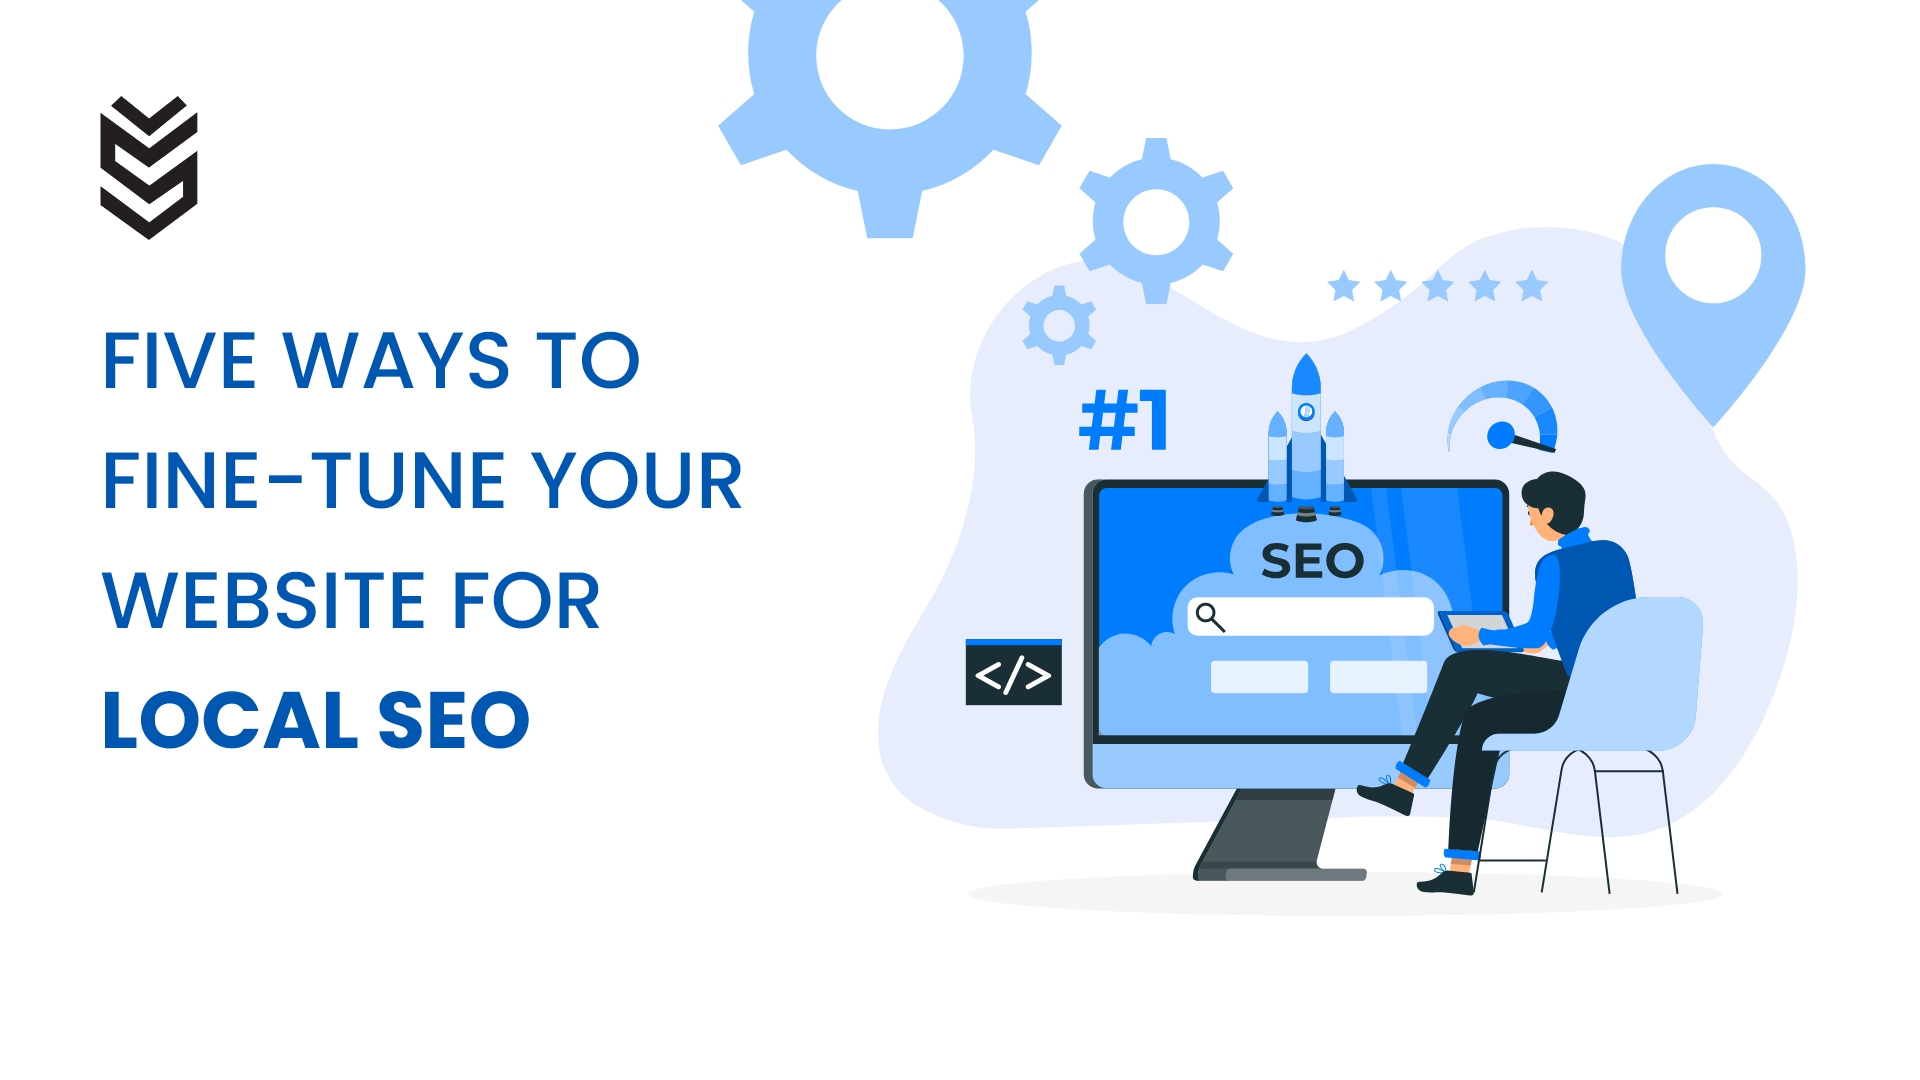 FIVE WAYS TO FINE-TUNE YOUR WEBSITE FOR LOCAL SEO